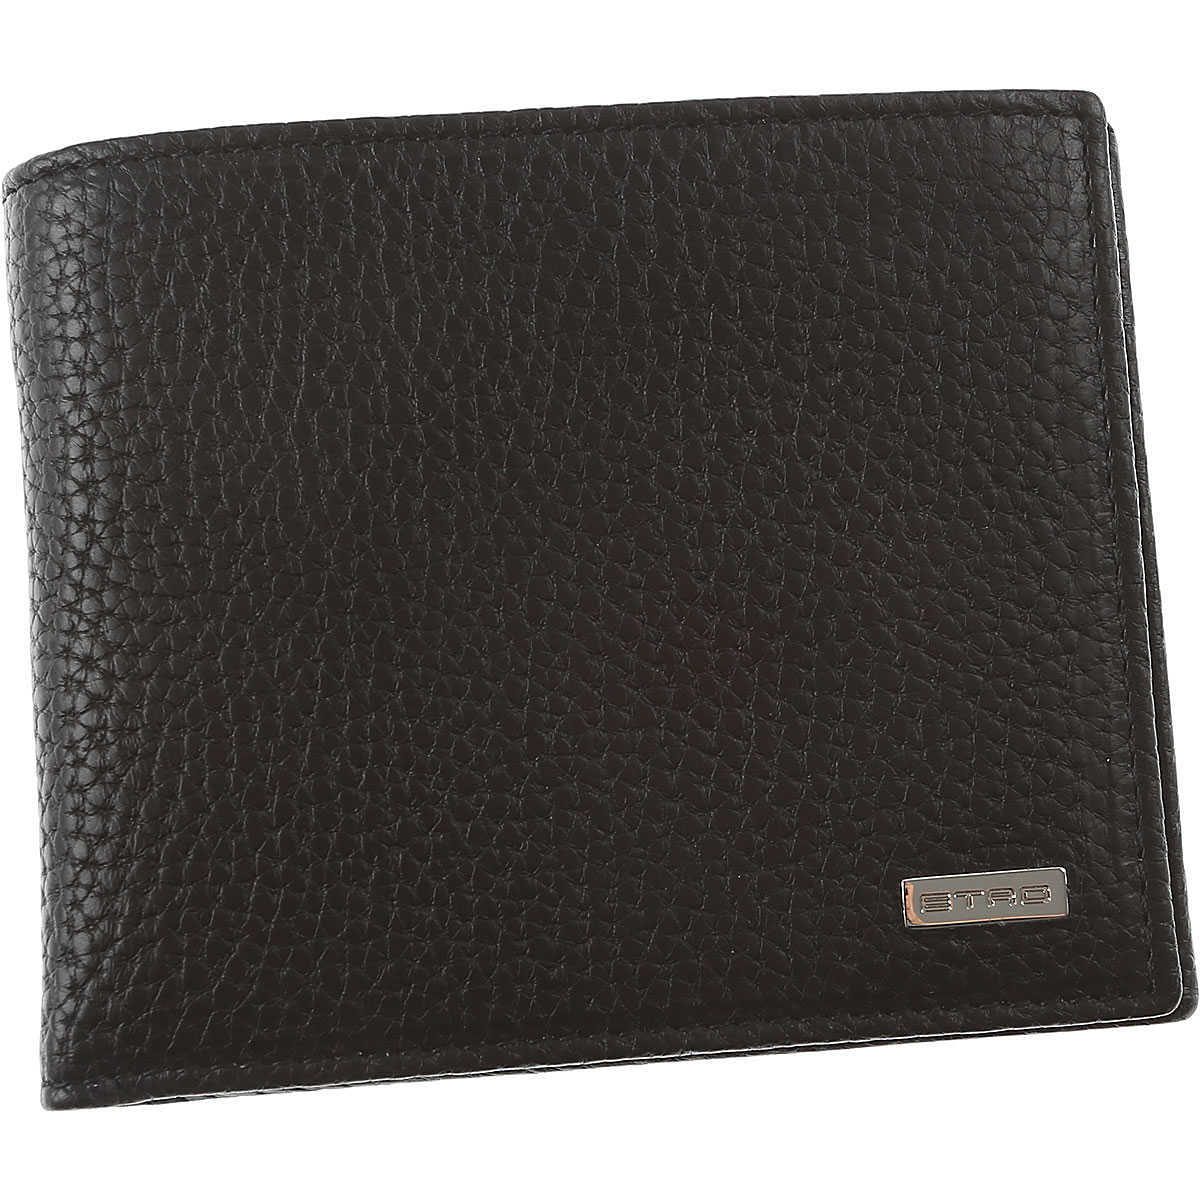 Etro Wallet for Men On Sale Black DK - GOOFASH - Mens WALLETS